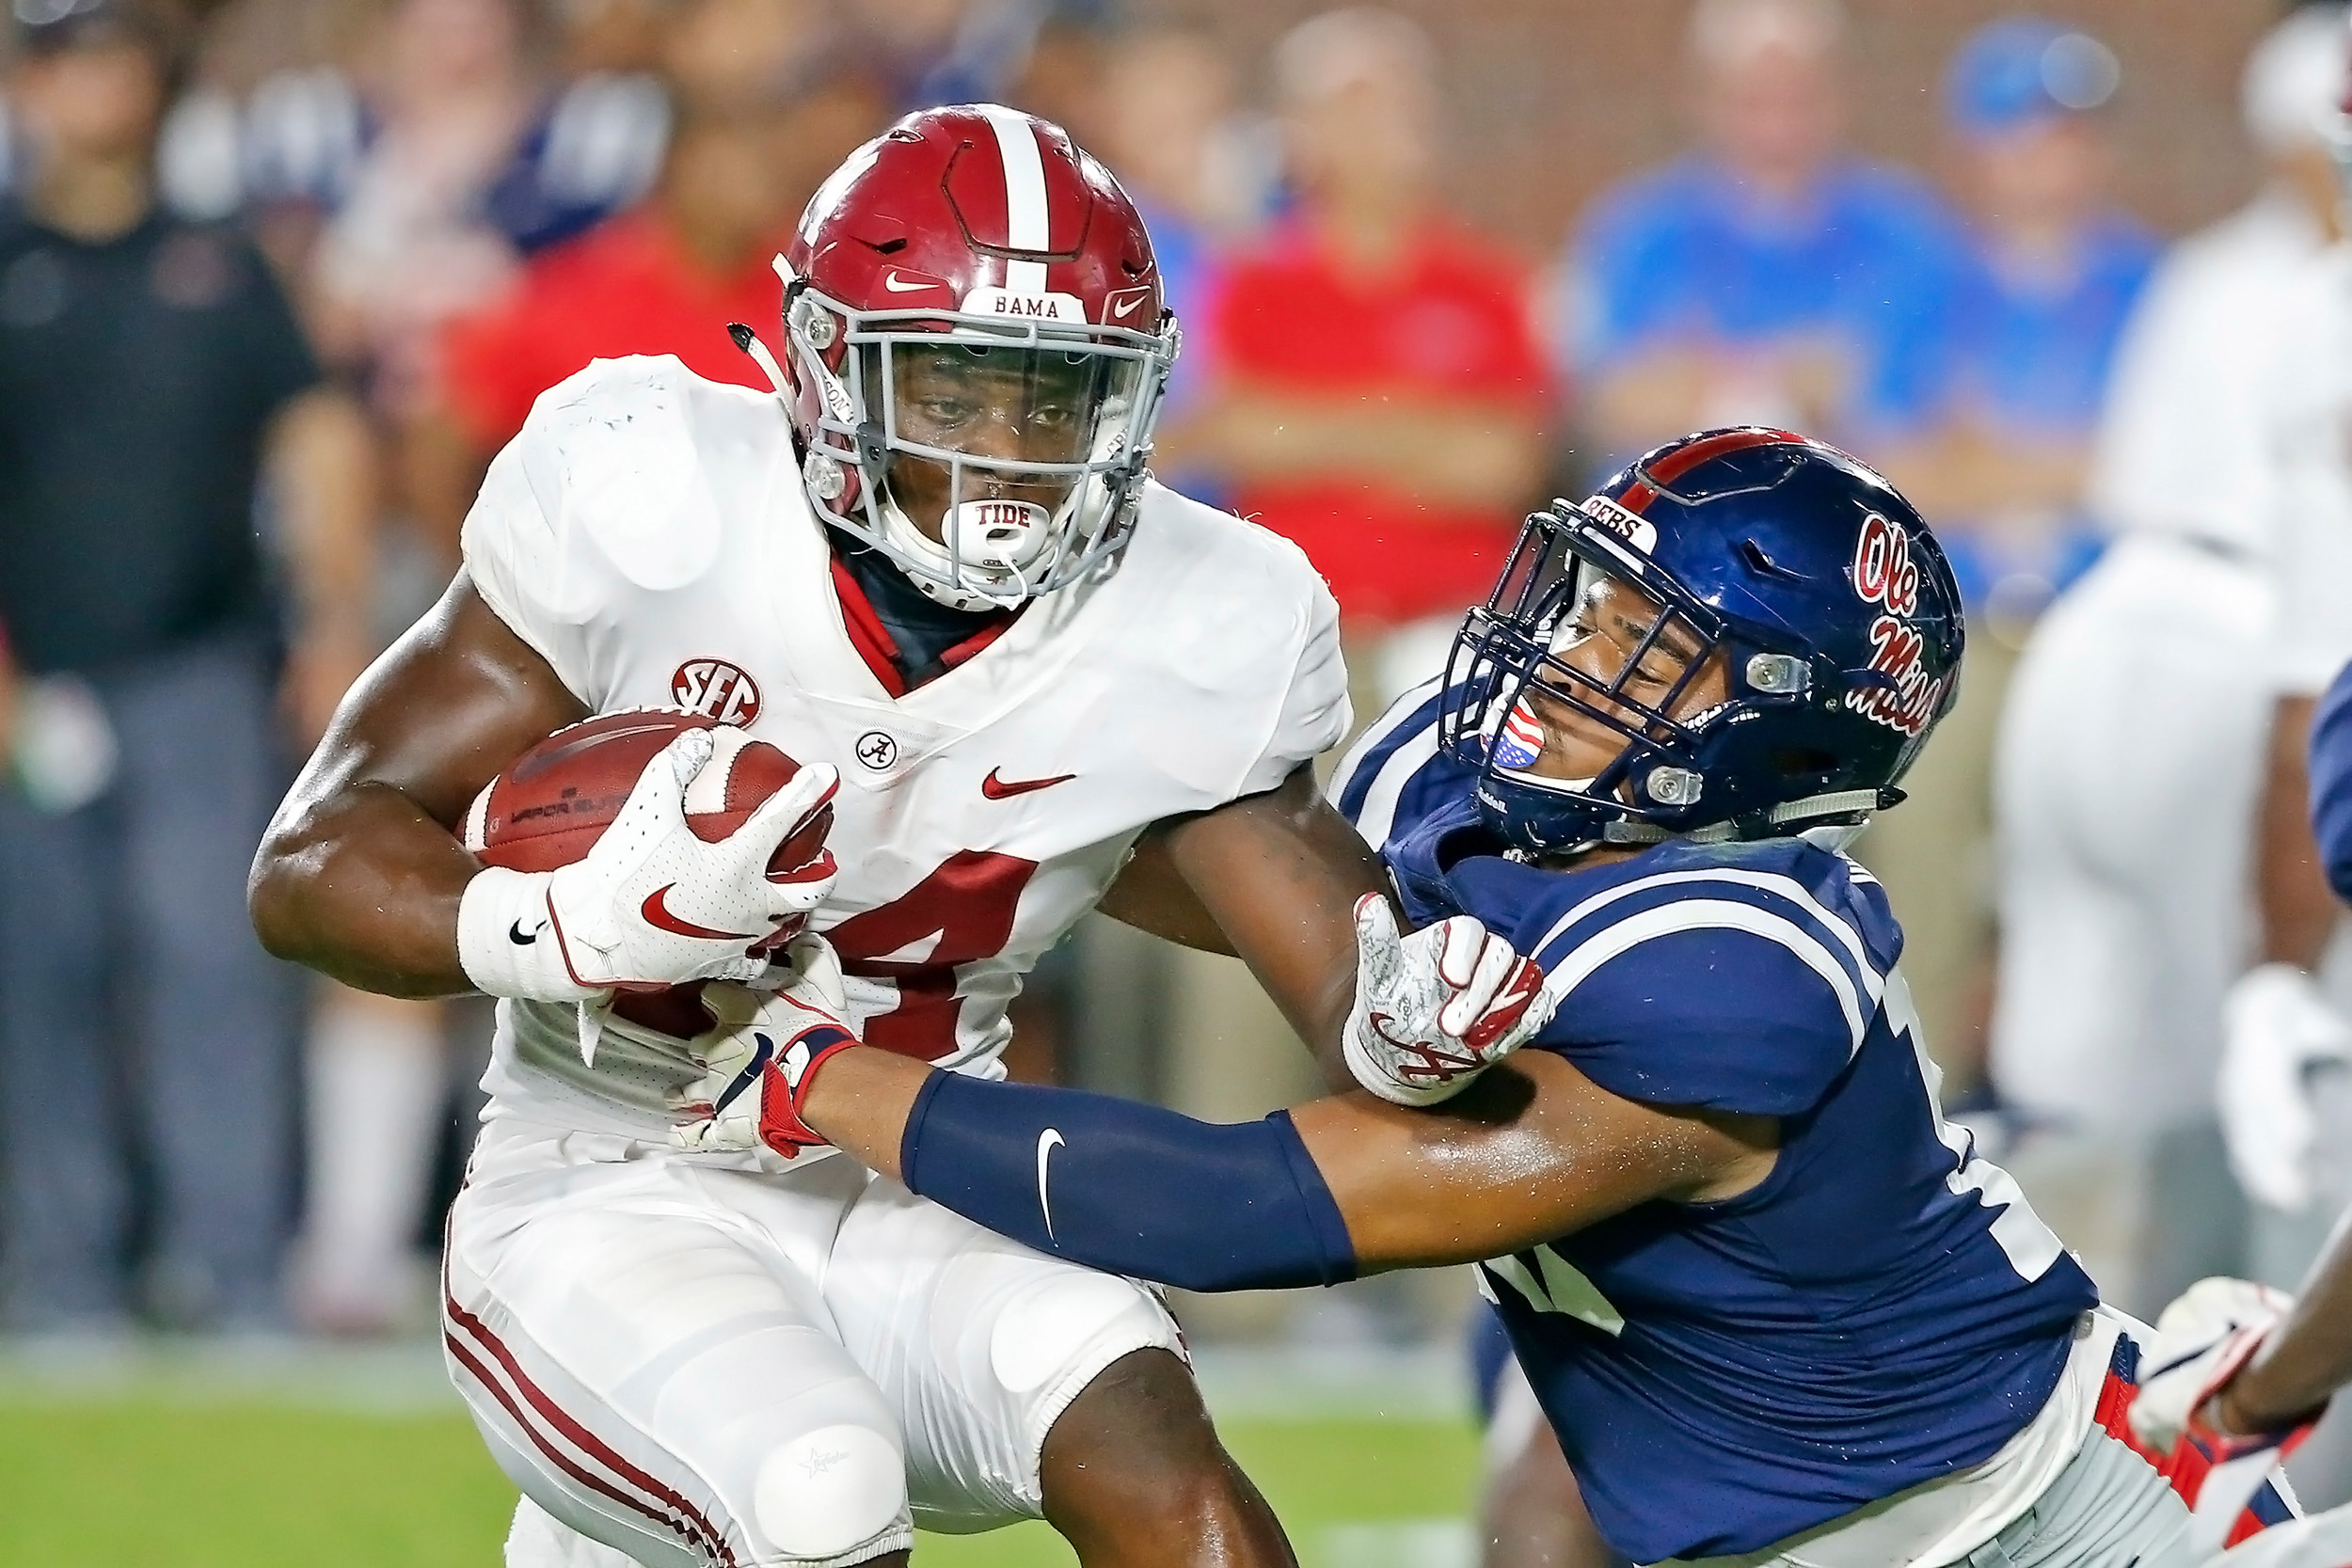 Alabama Crimson Tide running back Brian Robinson Jr. (24) is tackled by Mississippi Rebels linebacker Jacquez Jones (10) during the game between the University of Alabama and Ole Miss at Vaught-Hemingway Stadium. Jason Clark / Daily Mountain Eagle